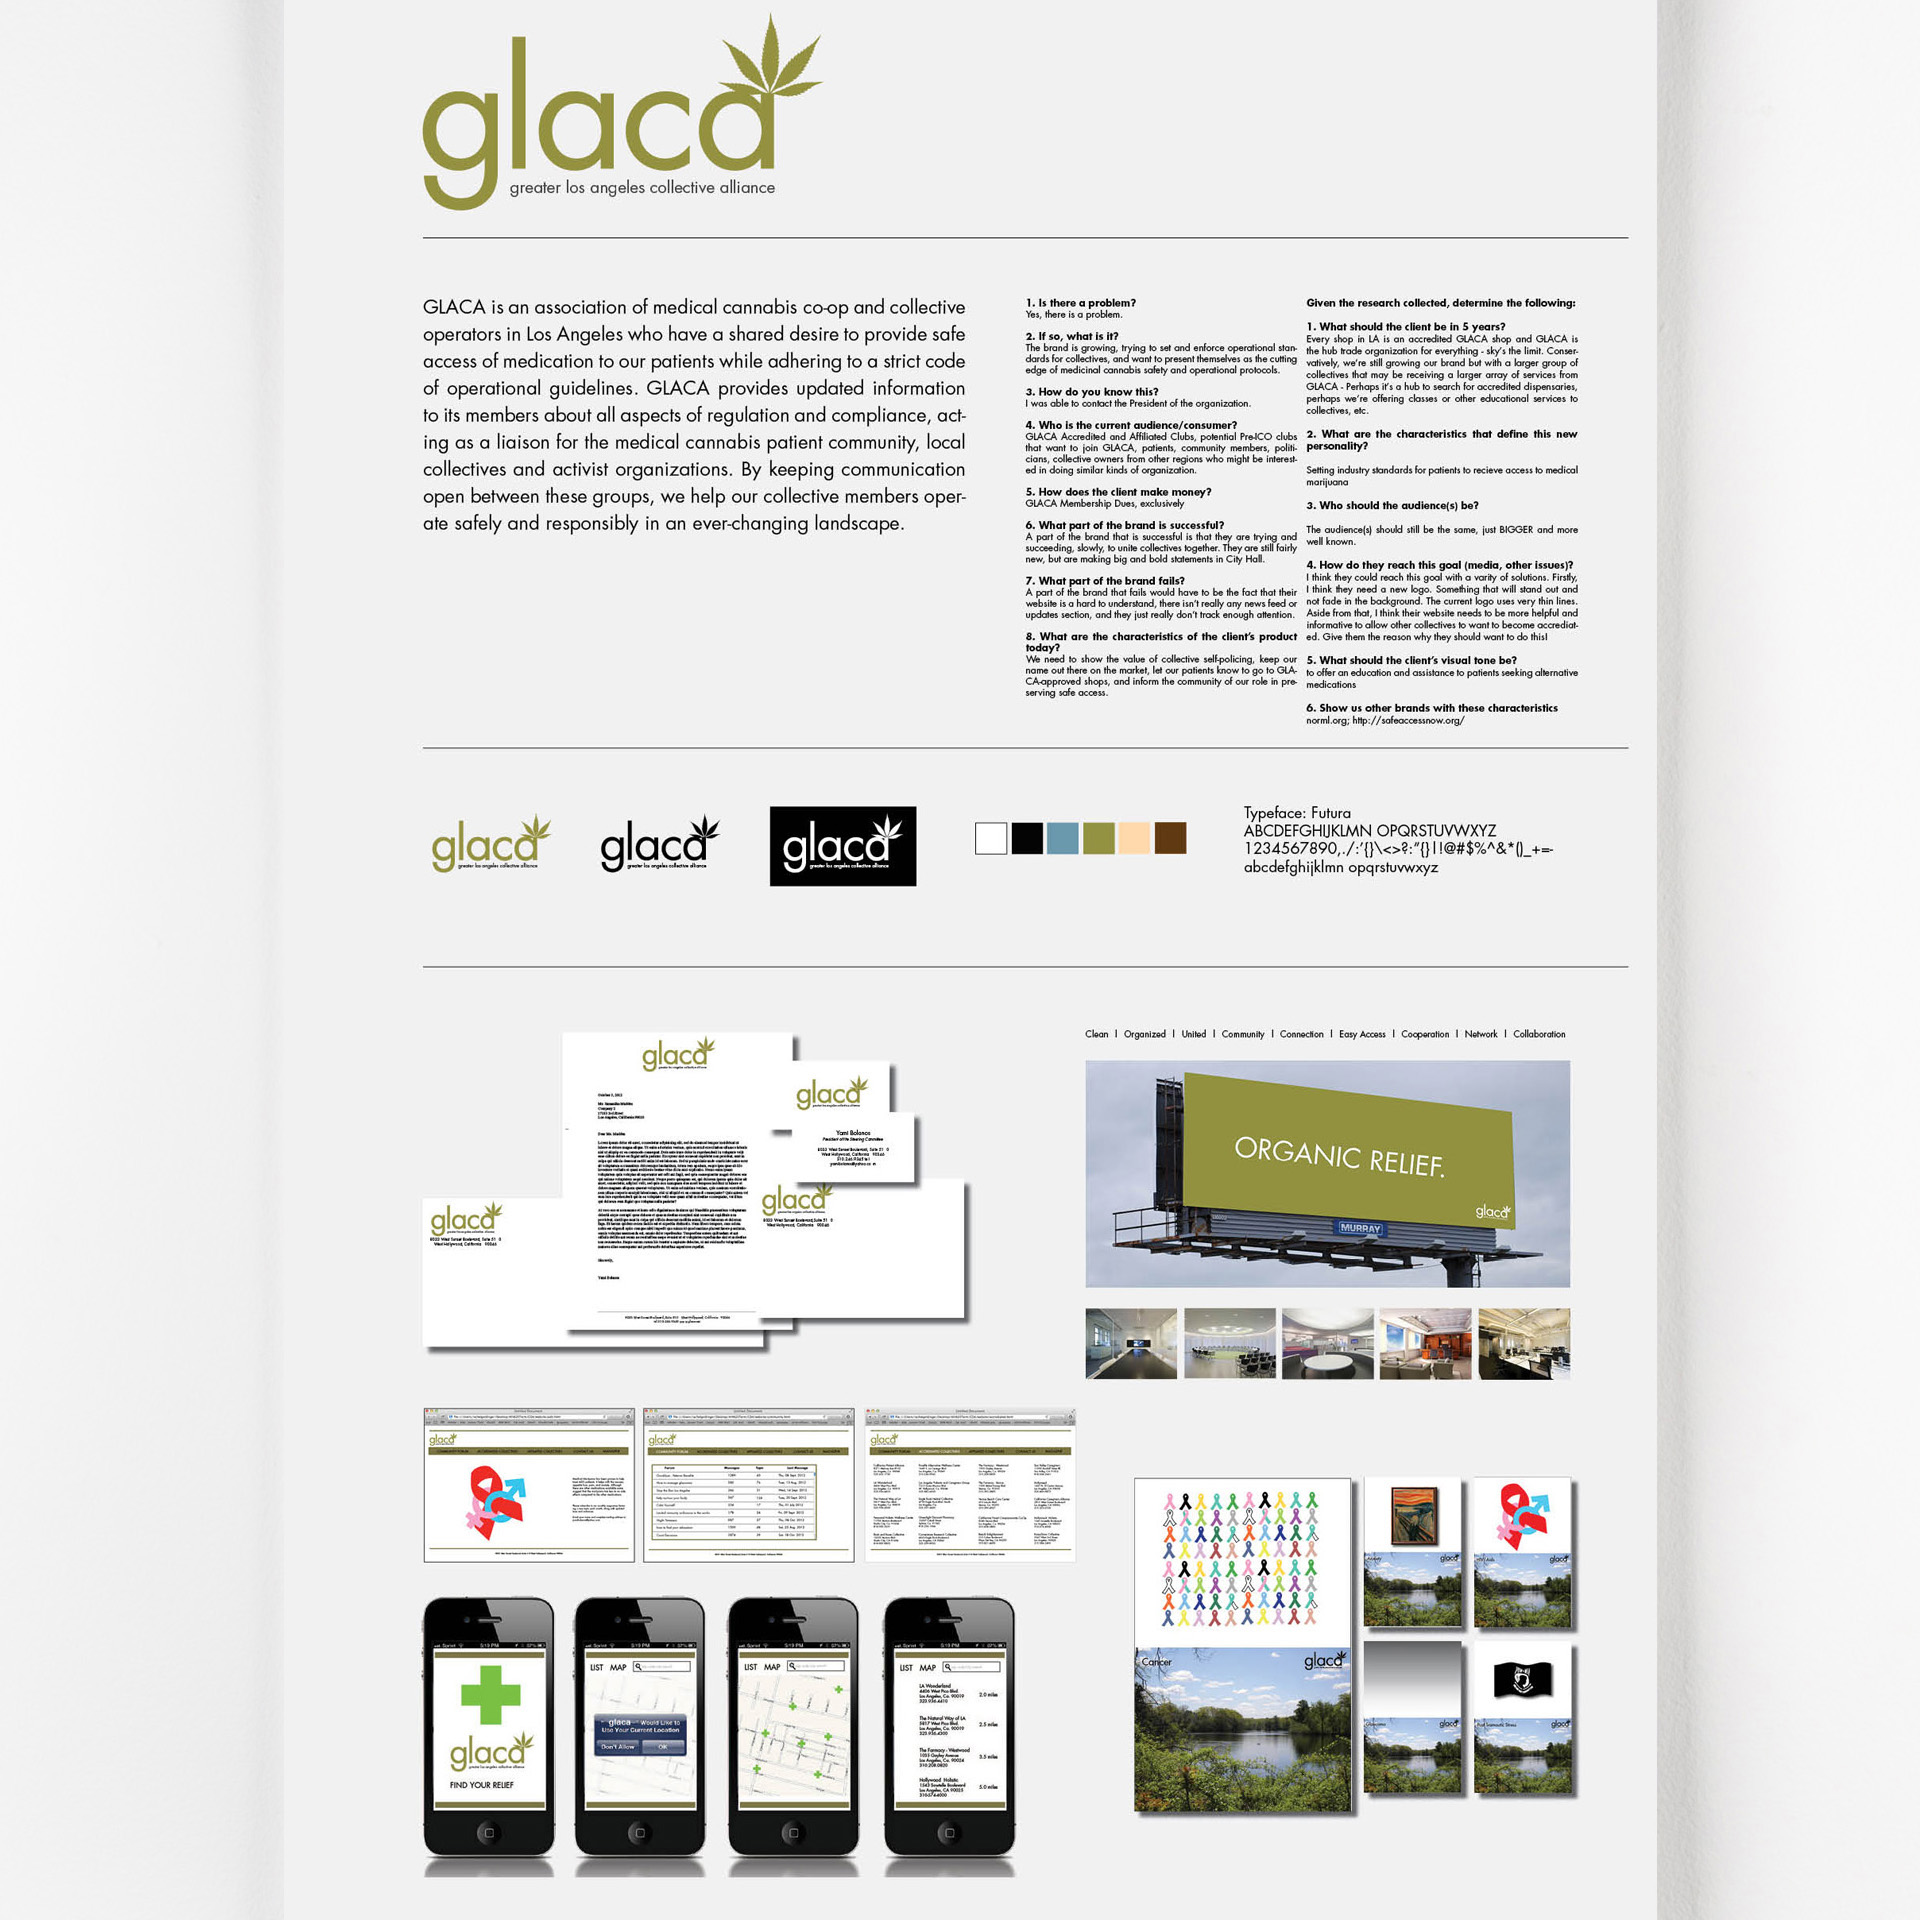 glaca backside_featured image